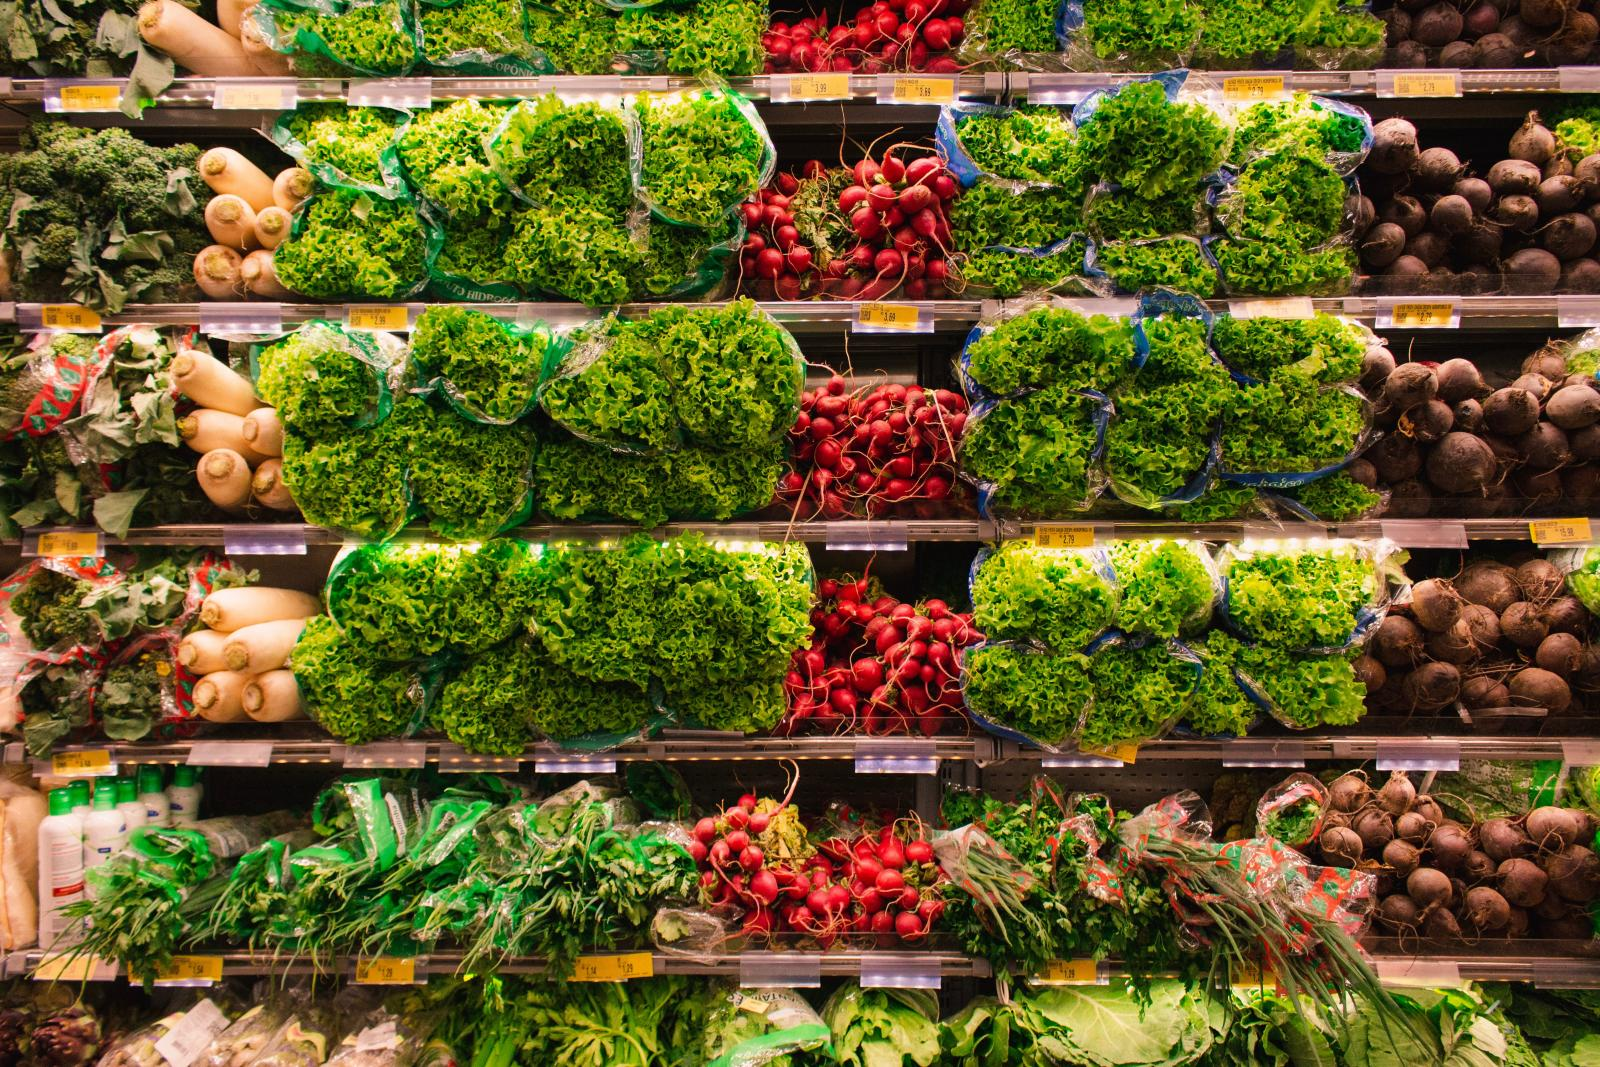 Vegetables on shelves. Photo credit: Pexels